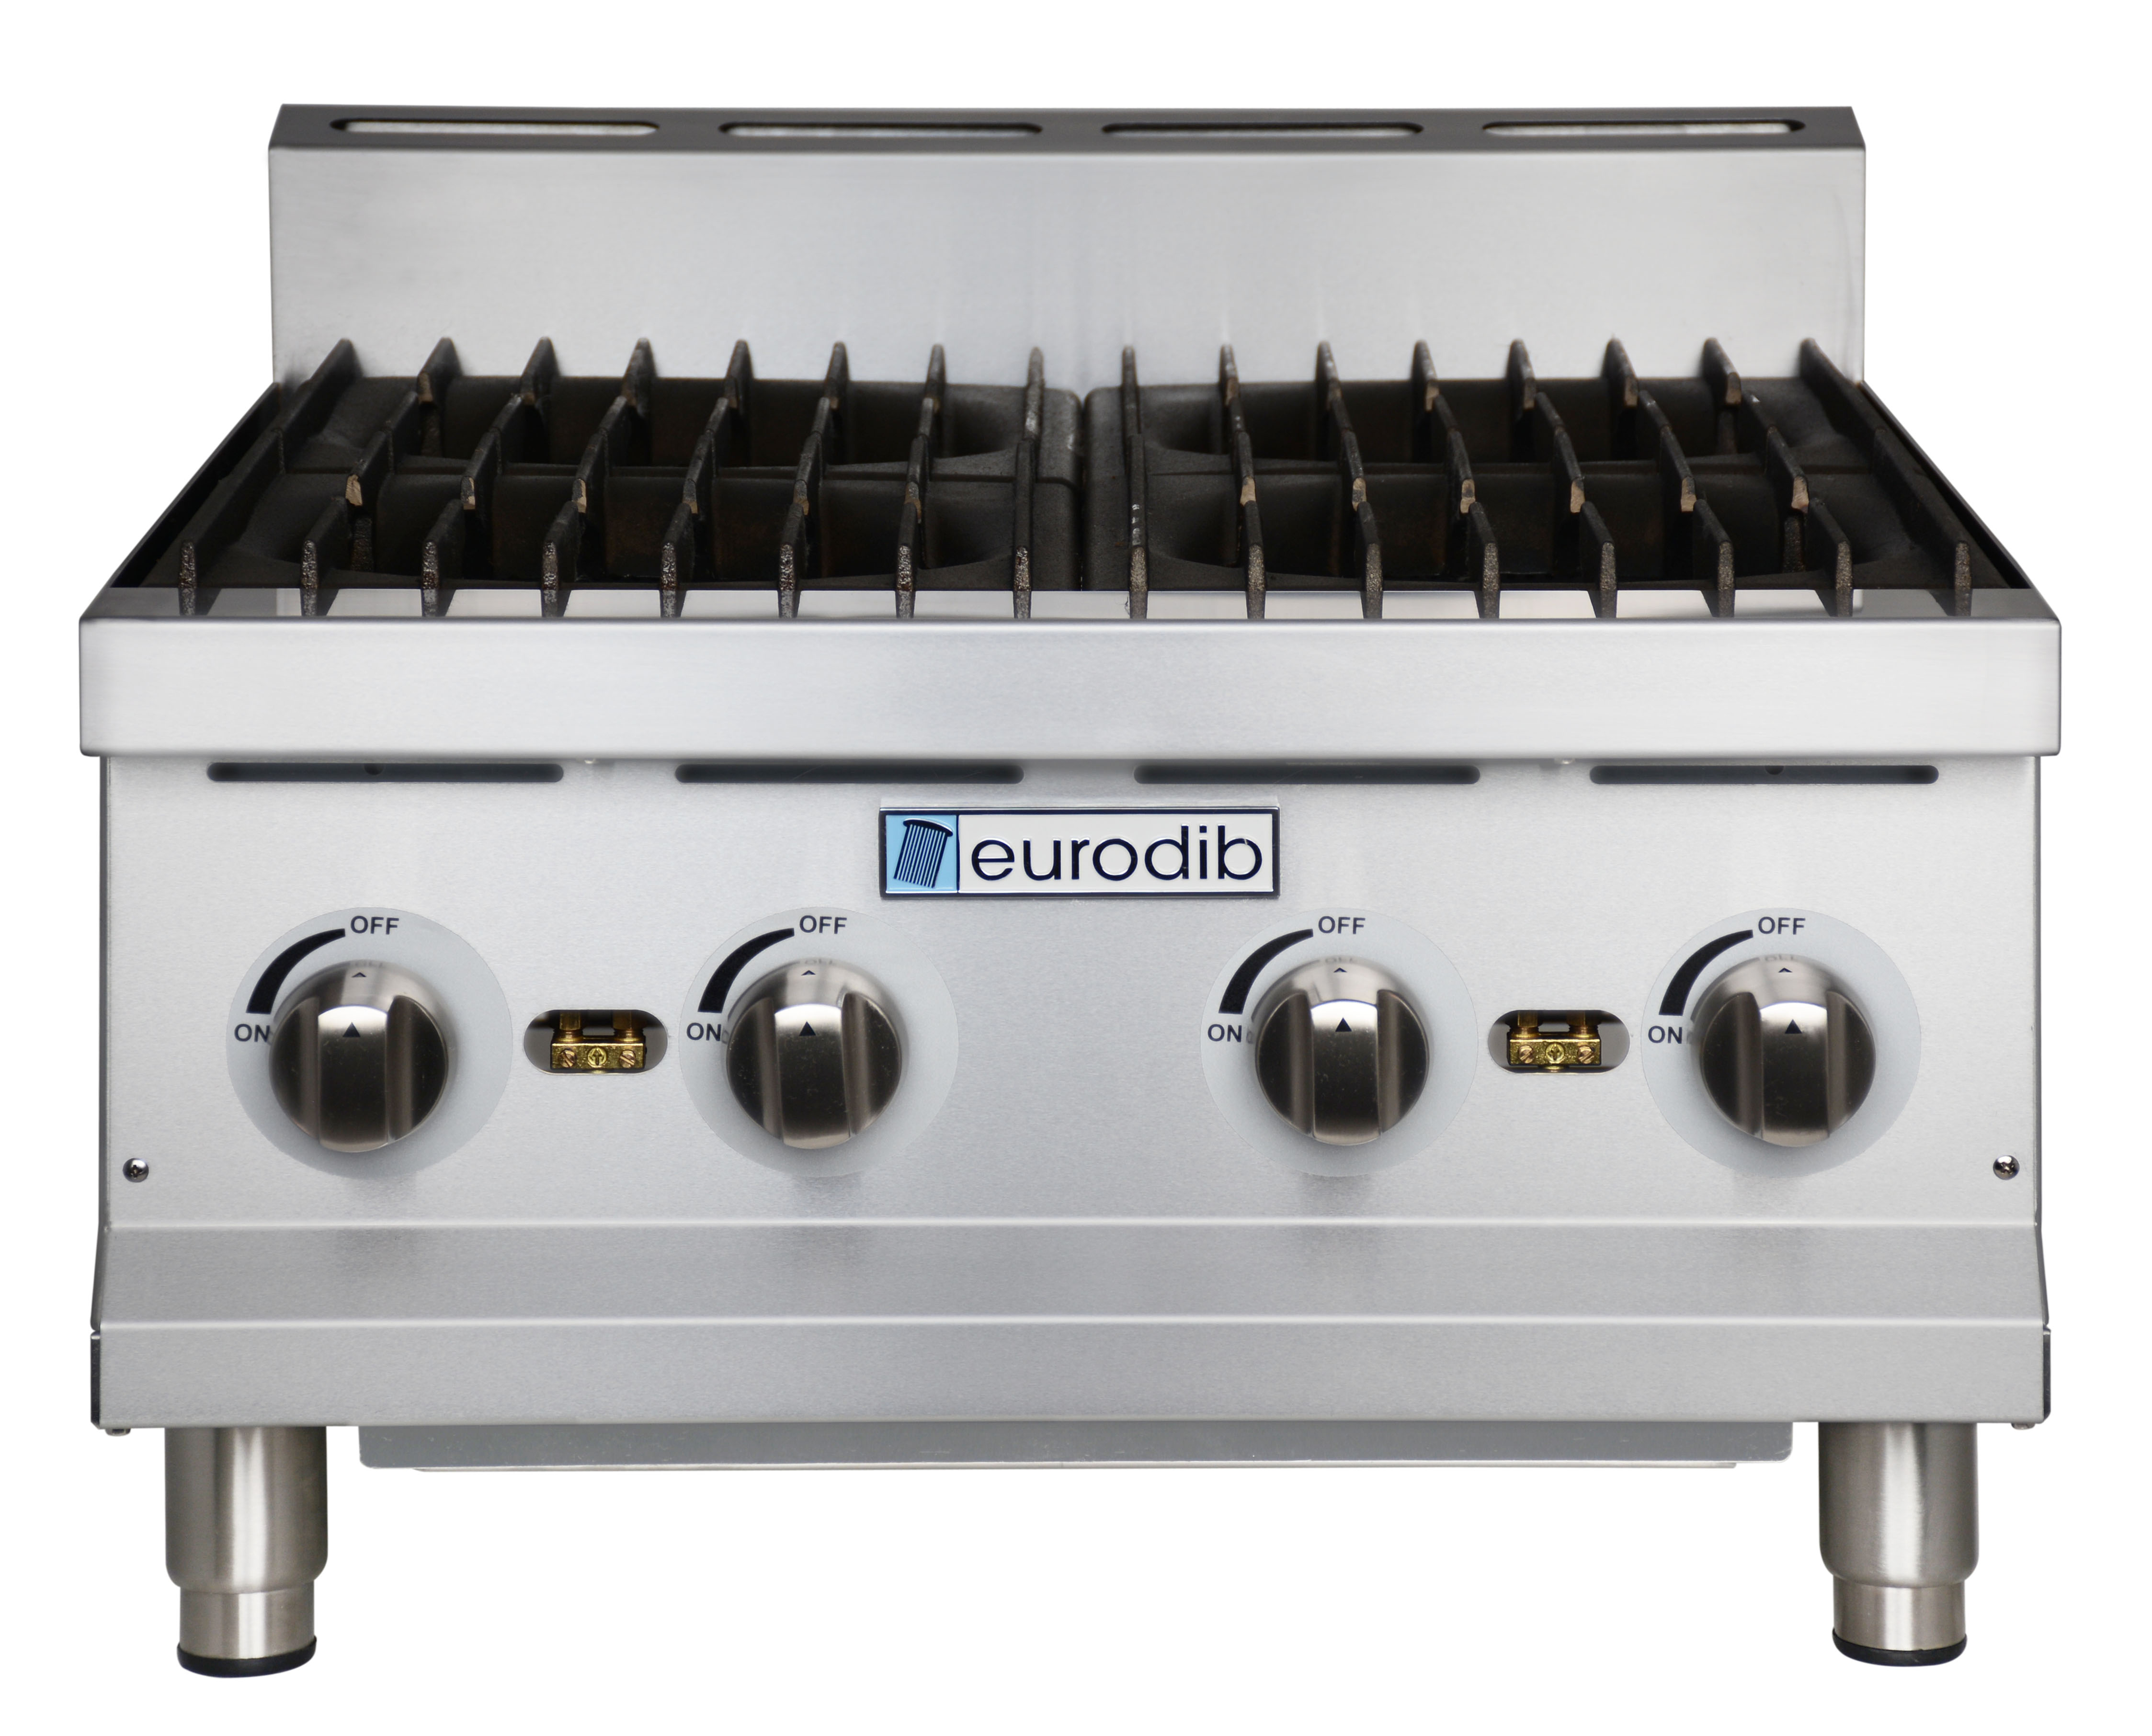 Eurodib USA T-HP636 gas hot plate